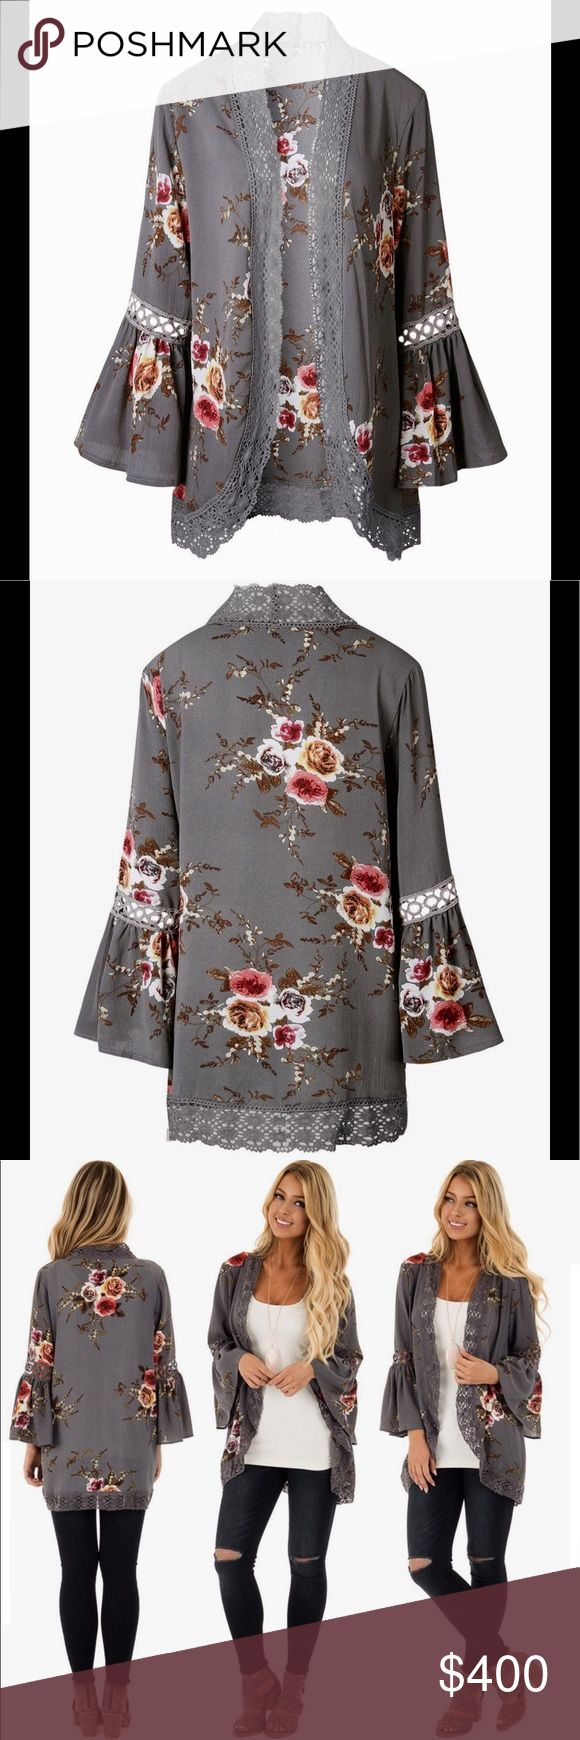 Floral open front cardigan Floral open front cardigan! Just ordered and will be delivered soon! Boutique floral cardigan. New! I will have size L & XL. Size details to come! Price will be $35 Smoke free and pet free home. Sweaters Cardigans